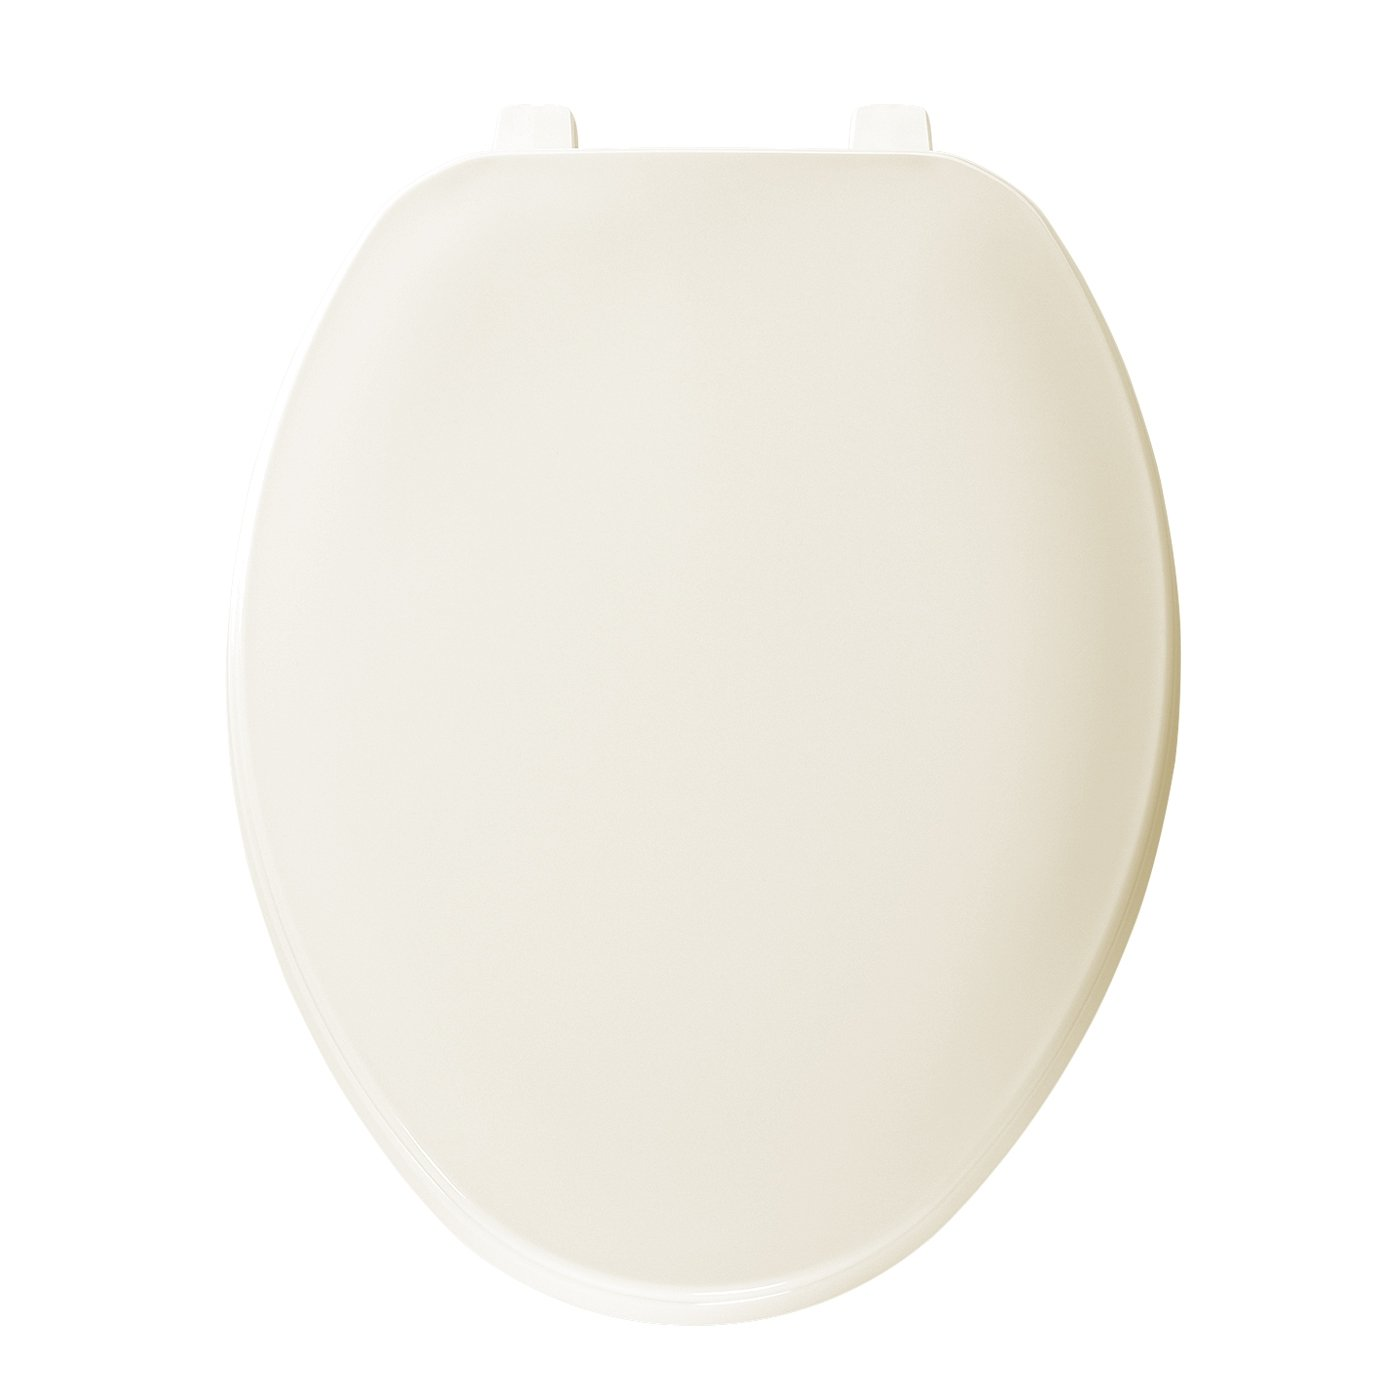 Awesome Cheap Bemis Church Toilet Seats Find Bemis Church Toilet Short Links Chair Design For Home Short Linksinfo